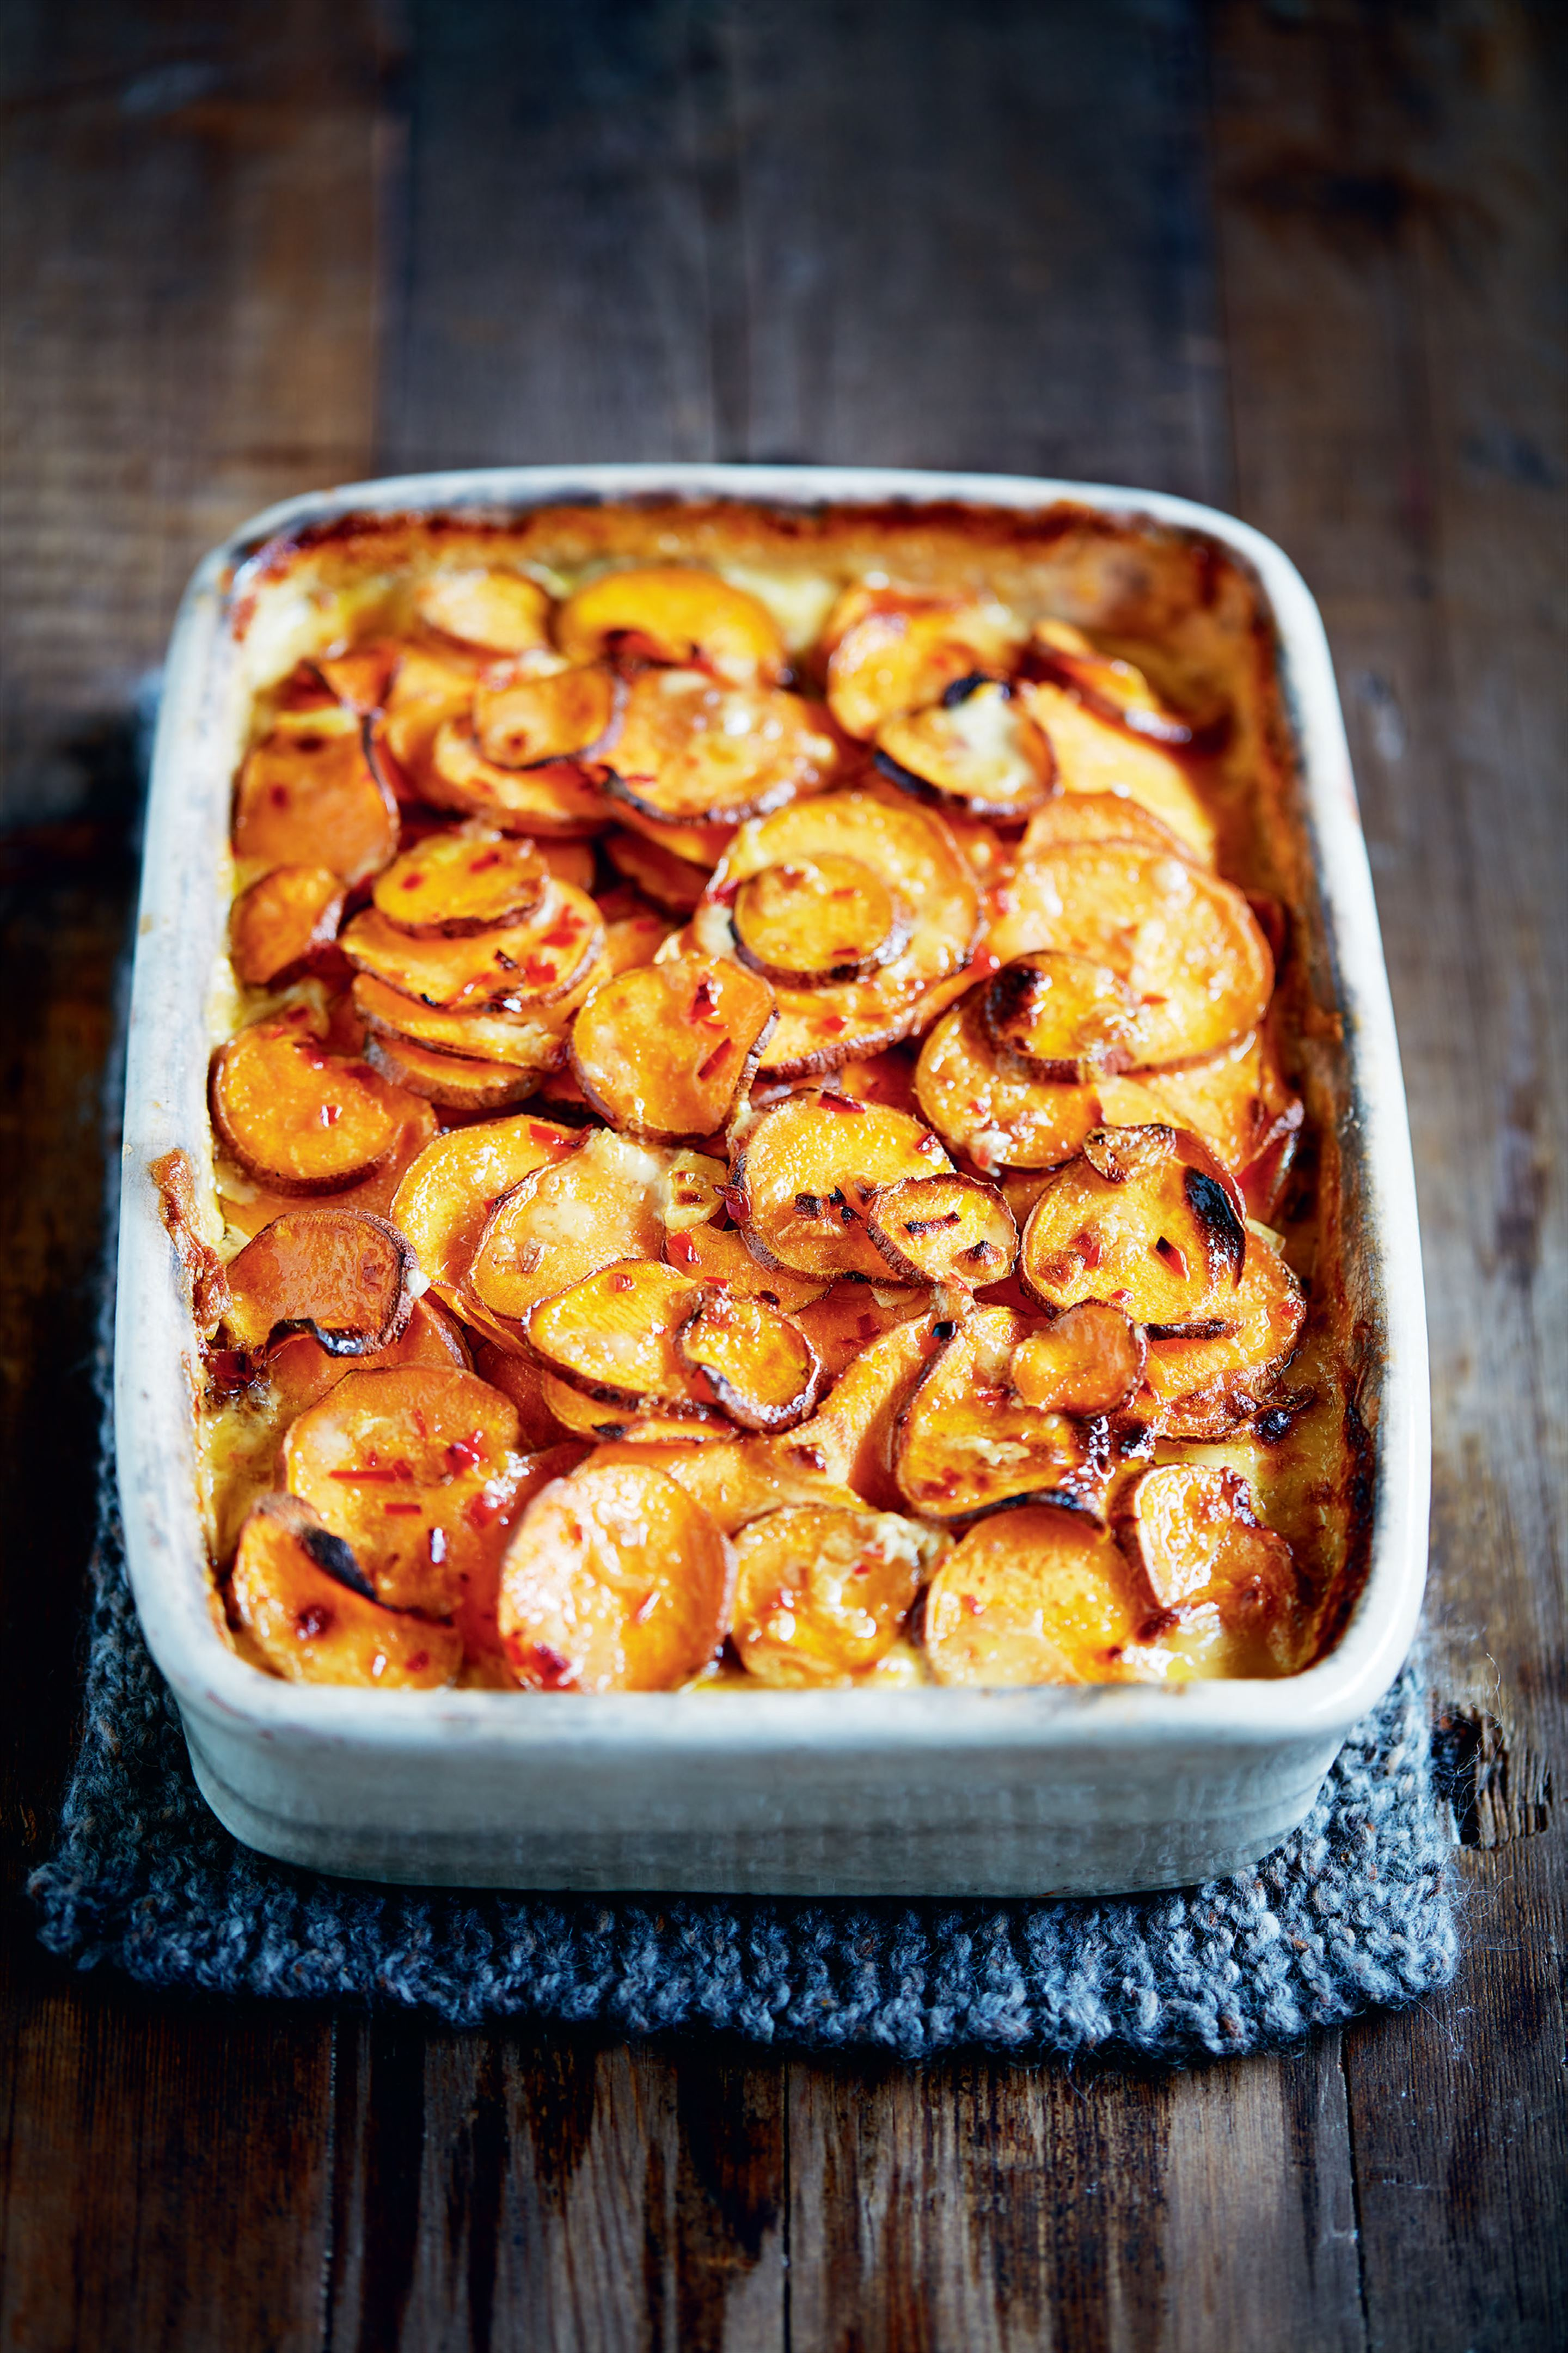 Peanut sweet potato gratin